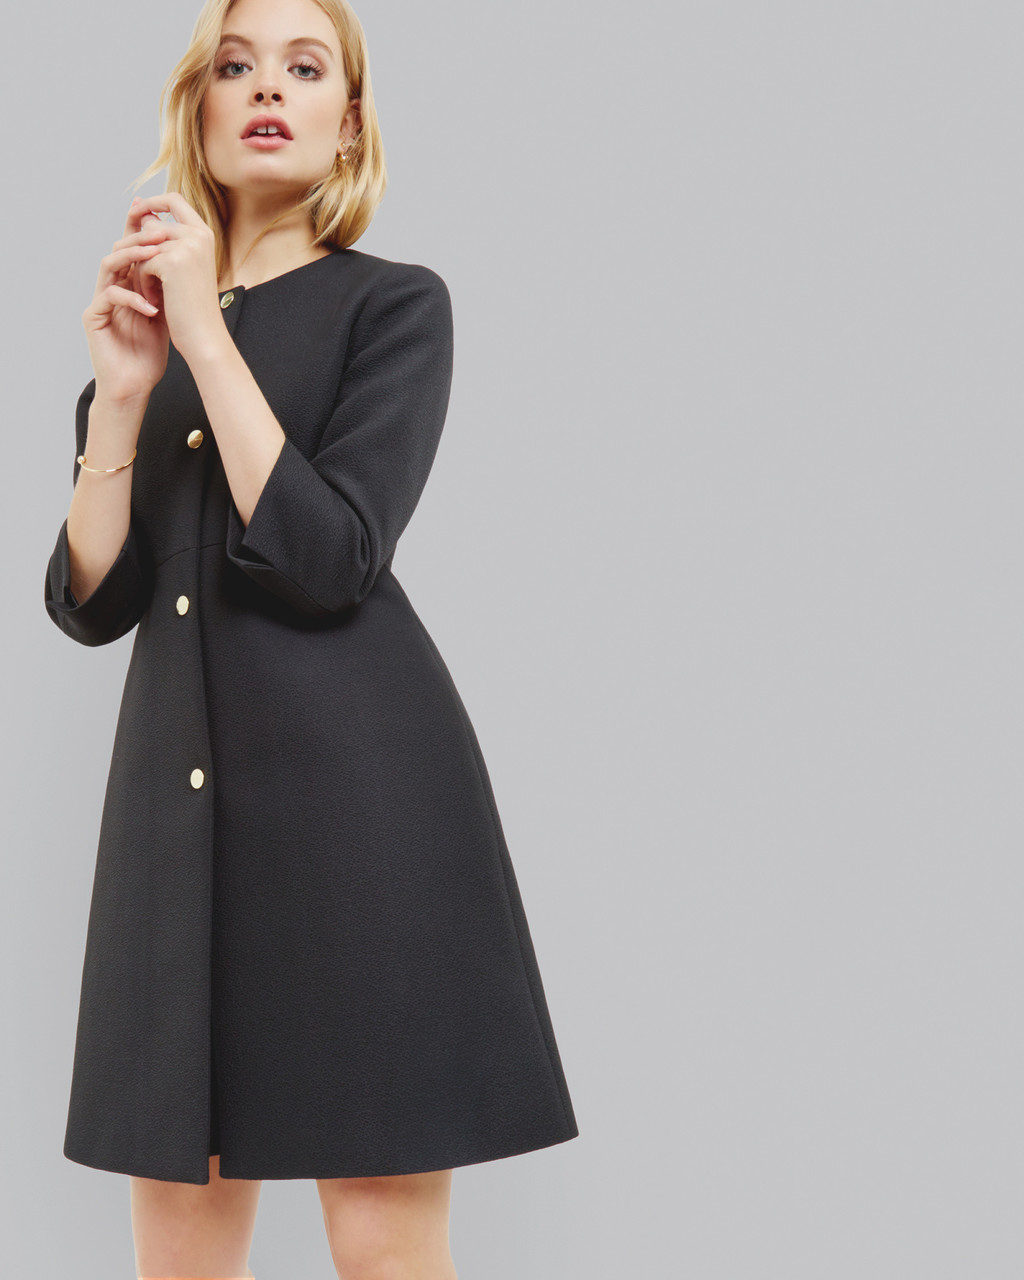 A Line Coat Black - pattern: plain; collar: round collar/collarless; style: single breasted; fit: slim fit; length: mid thigh; predominant colour: black; occasions: work, creative work; fibres: wool - mix; sleeve length: 3/4 length; sleeve style: standard; collar break: high; pattern type: fabric; texture group: woven bulky/heavy; wardrobe: investment; season: a/w 2016